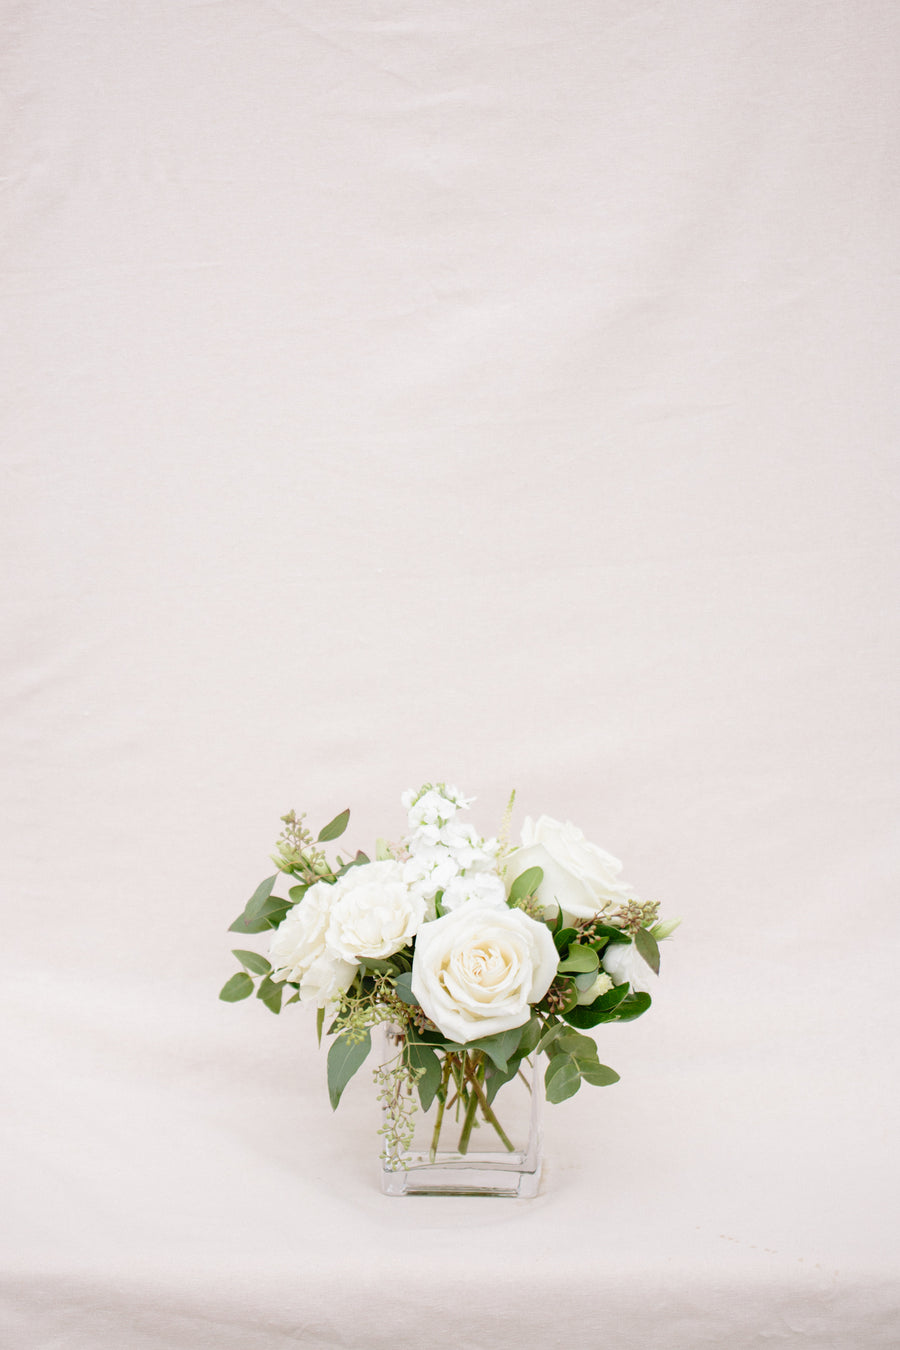 Vase Arrangement in a White & Green Colour Palette